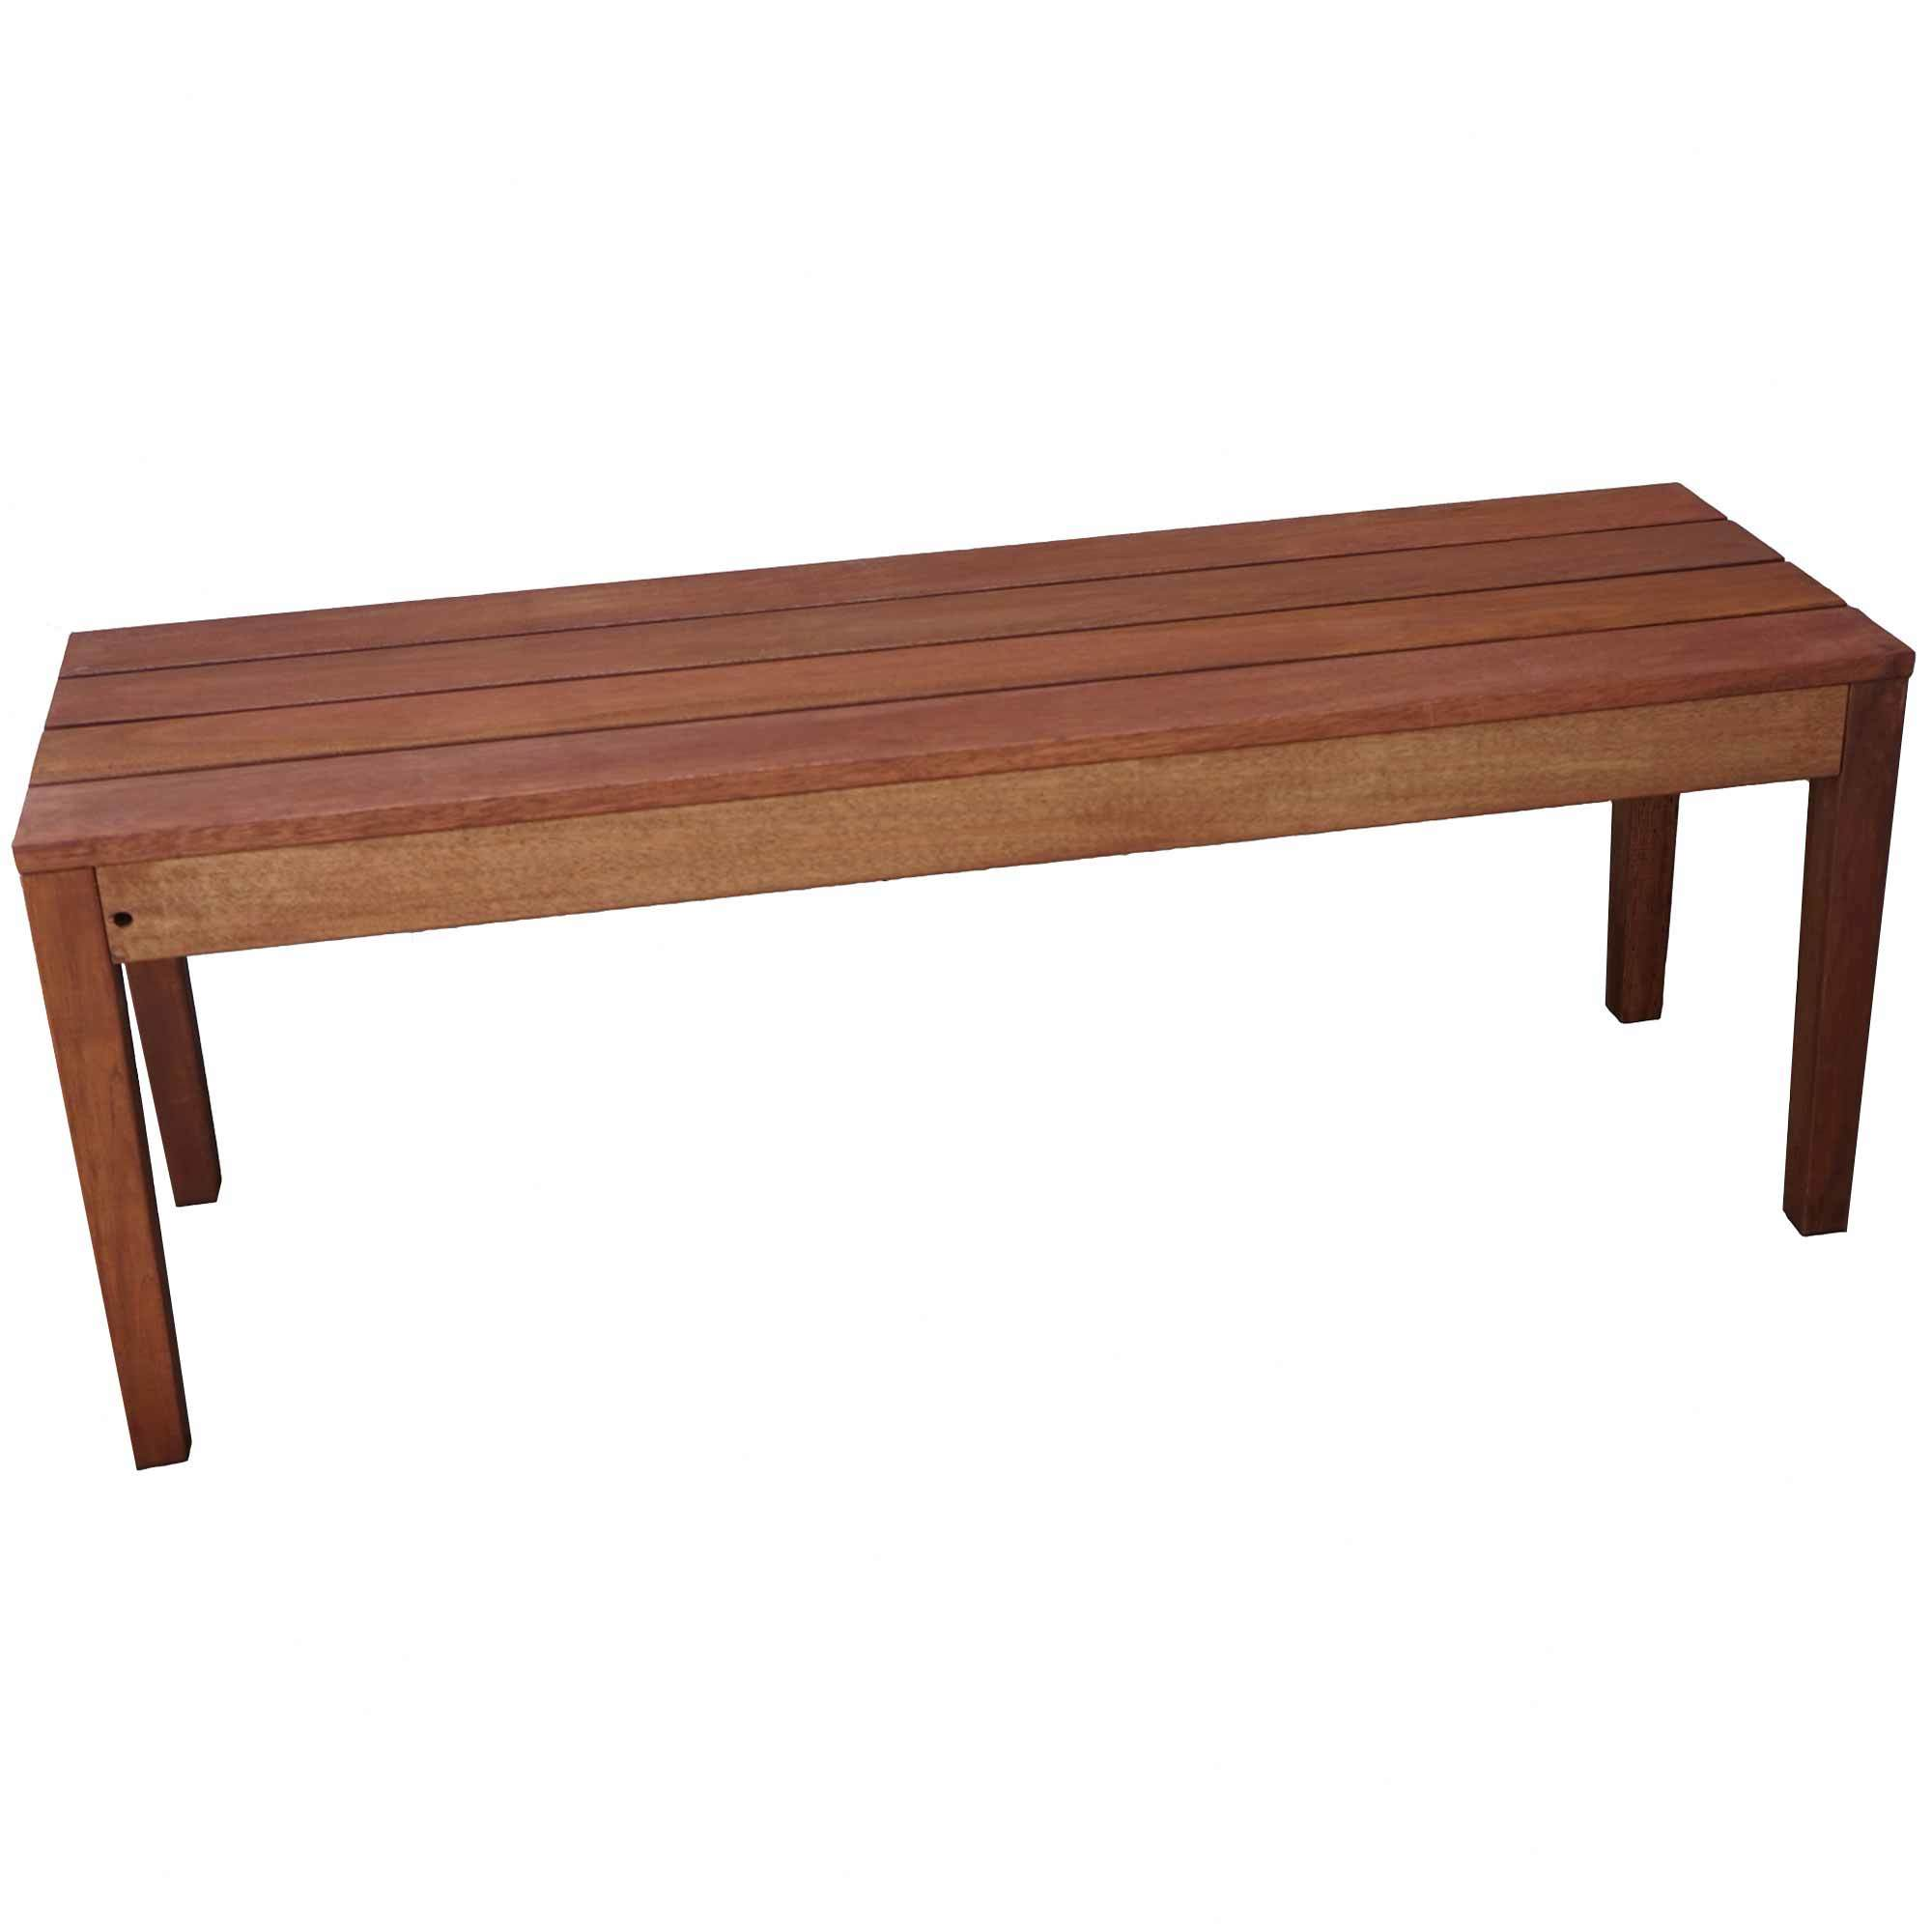 Woodlands Outdoor Furniture 2 Seater Outdoor Wooden Bench Reviews Temple Webster